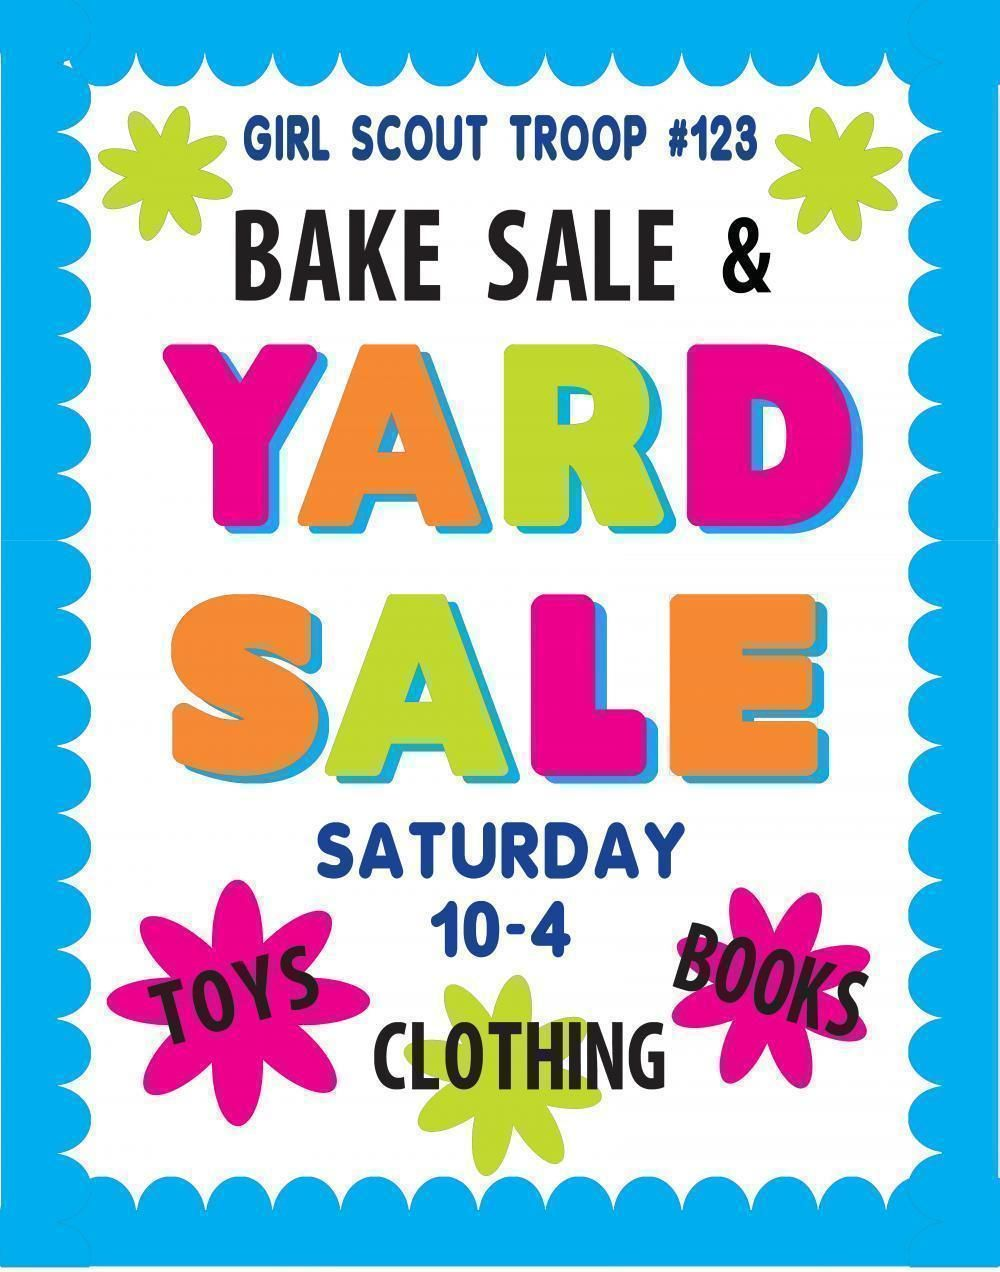 make a bake and yard sale poster | girls scout fundraiser poster